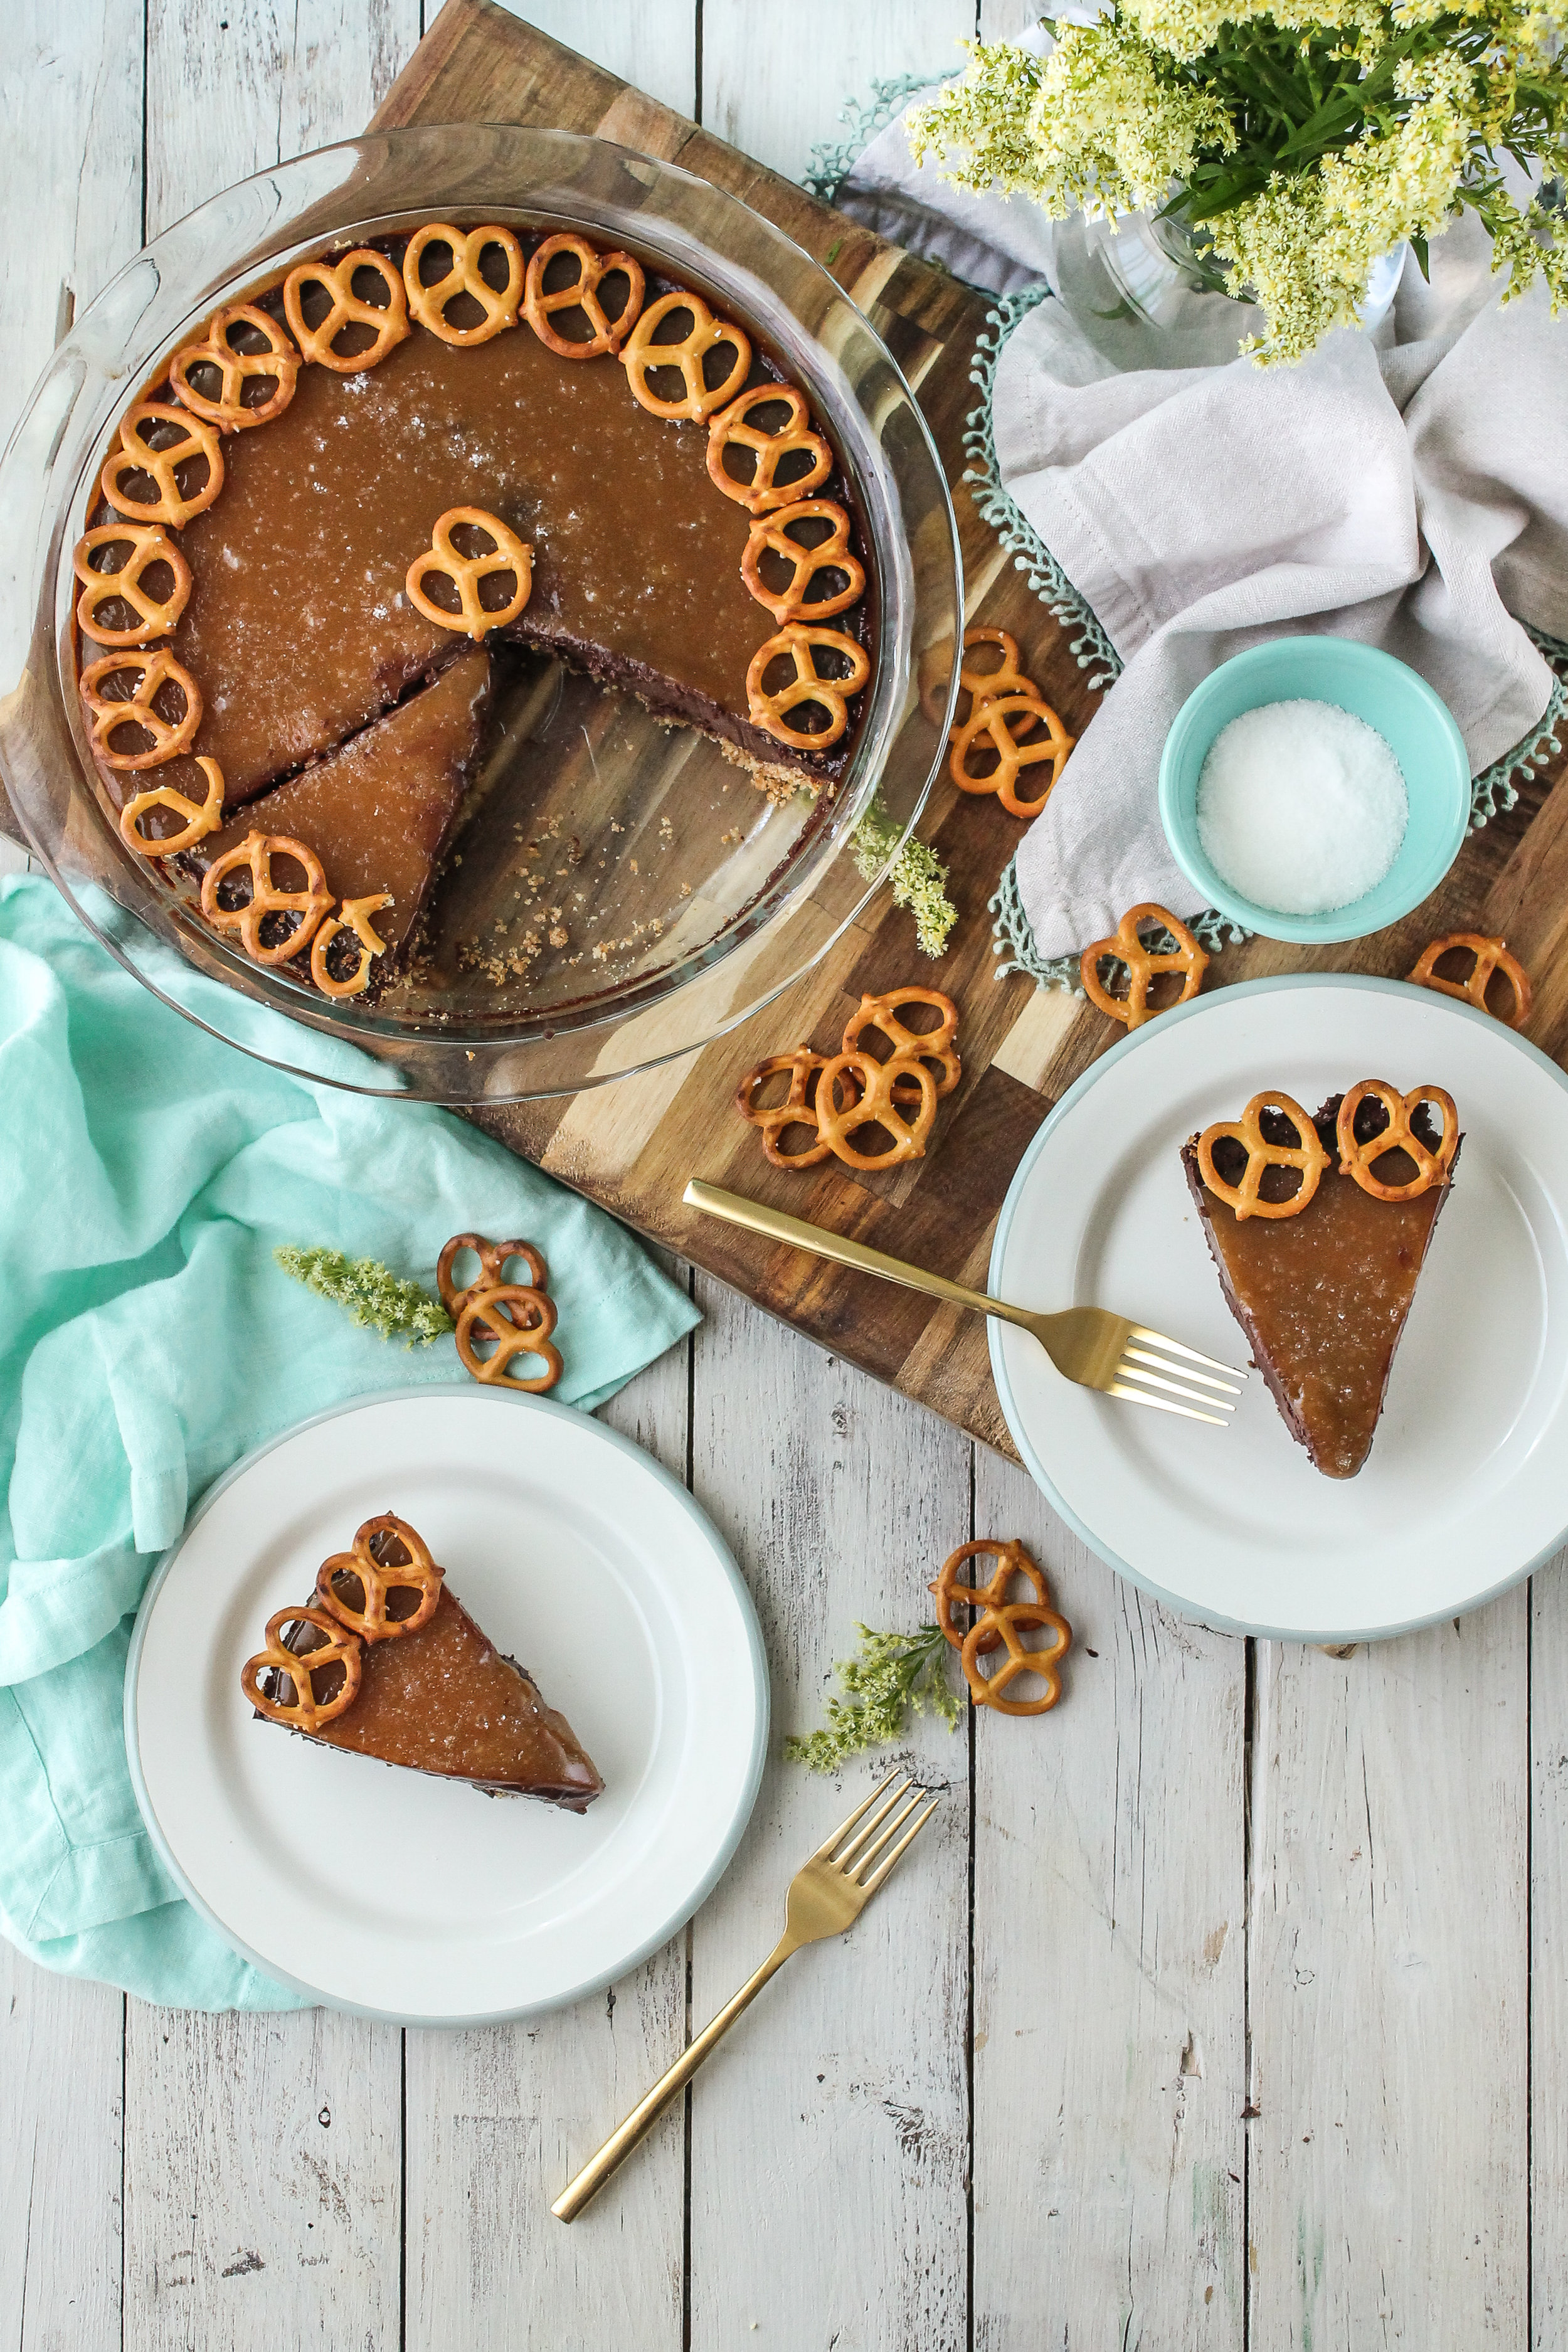 This sweet and salty Gluten-Free Salted Carmel Dark Chocolate Pie has a crunchy gluten-free pretzel crust and the most decadent chocolate custard.  Find this recipe and so many more on WWW.PEDANTICFOODIE.COM